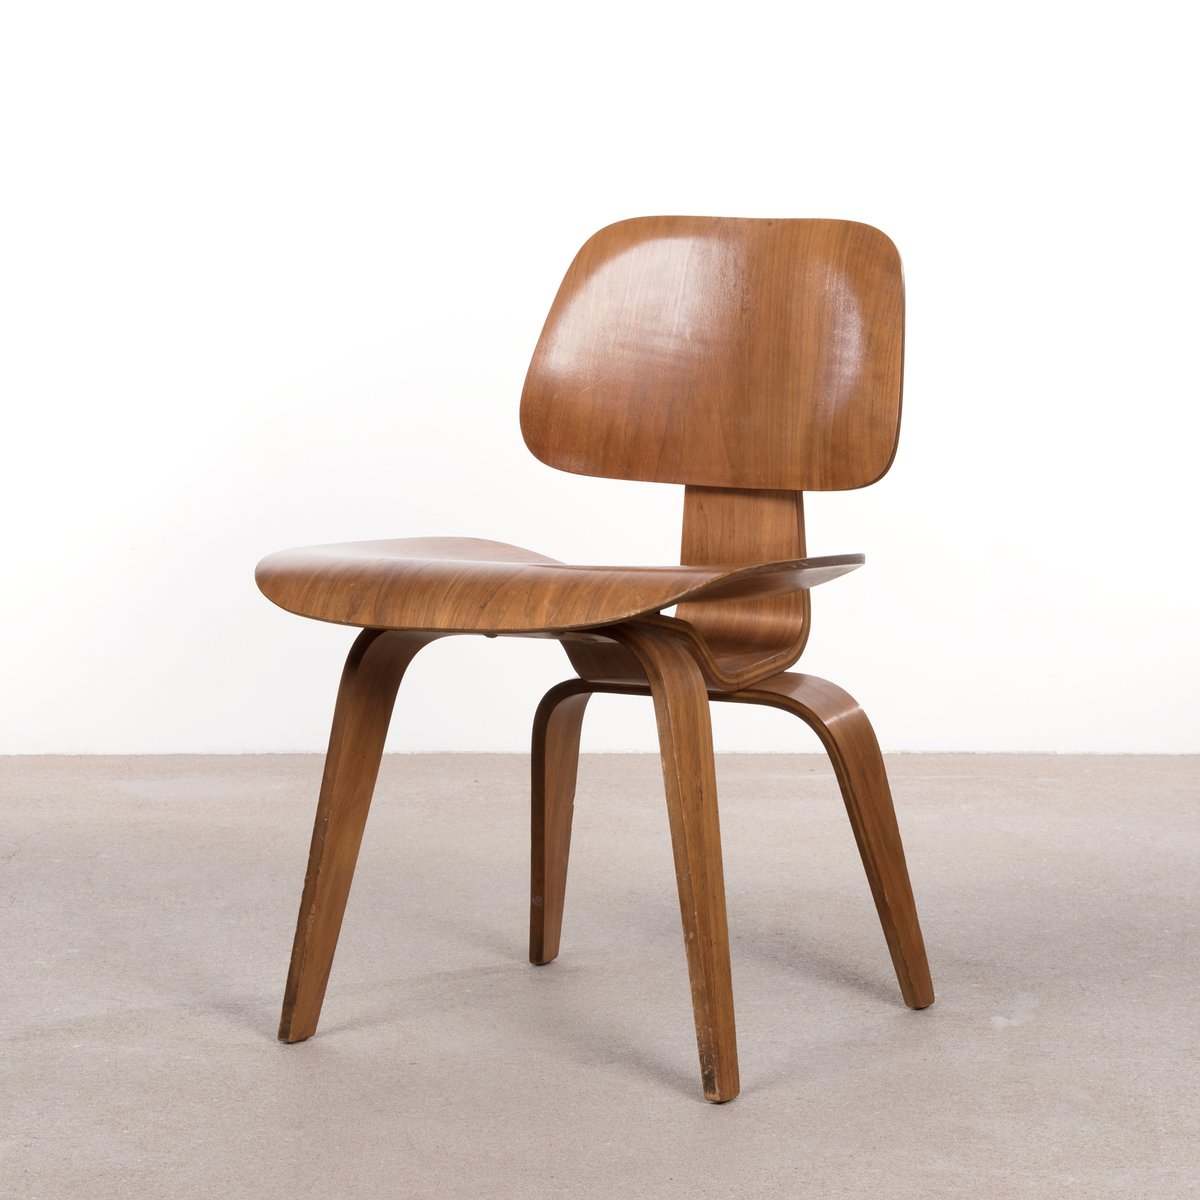 Eames Plywood Chair Dcw Walnut Plywood Dining Chair By Charles Ray Eames For Herman Miller 1952